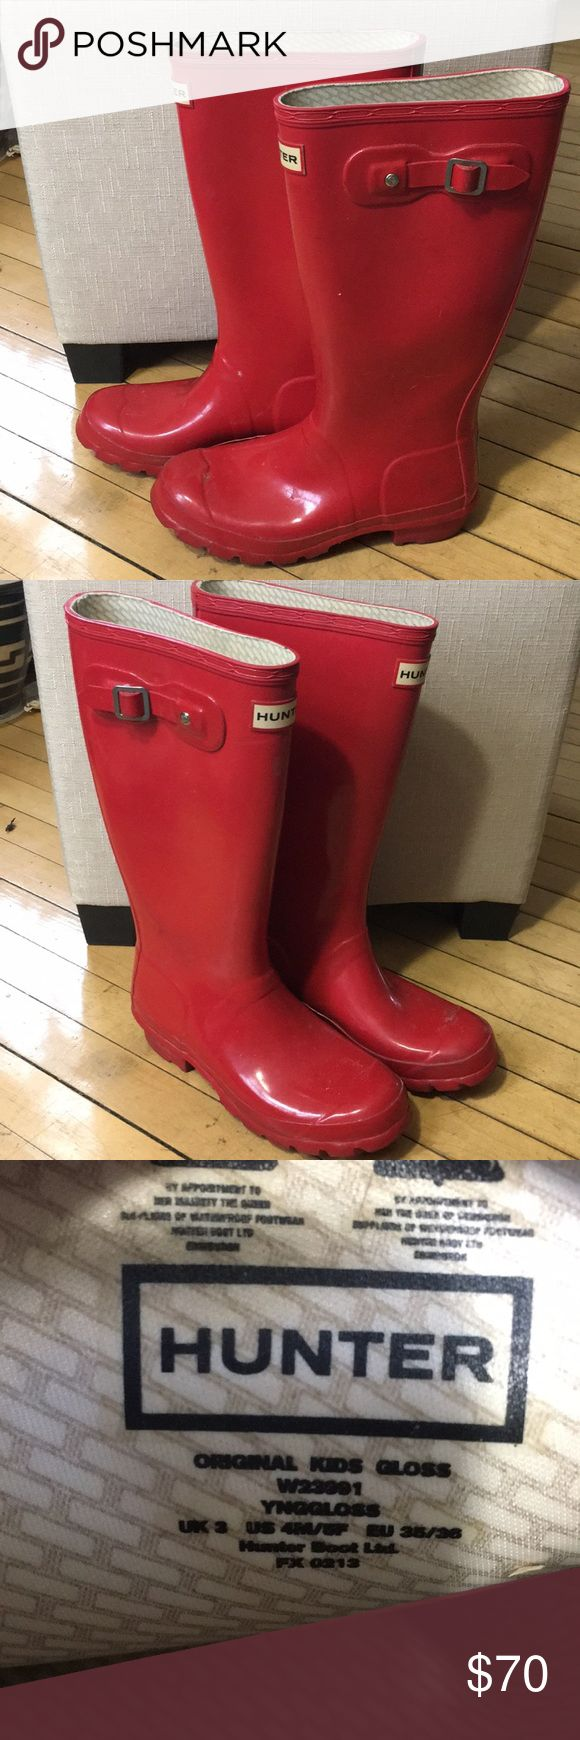 "Red Hunter Boots Red hunter boots   Kids size 4M/5F  I typically wear women's size 5 and these fit me perfectly.  Worn but in good condition.  I'm 5'2"" and these come up to just above mid calf.   Have a few pairs so I'm getting rid of these.   Let me know your best offer Hunter Boots Shoes Winter & Rain Boots"